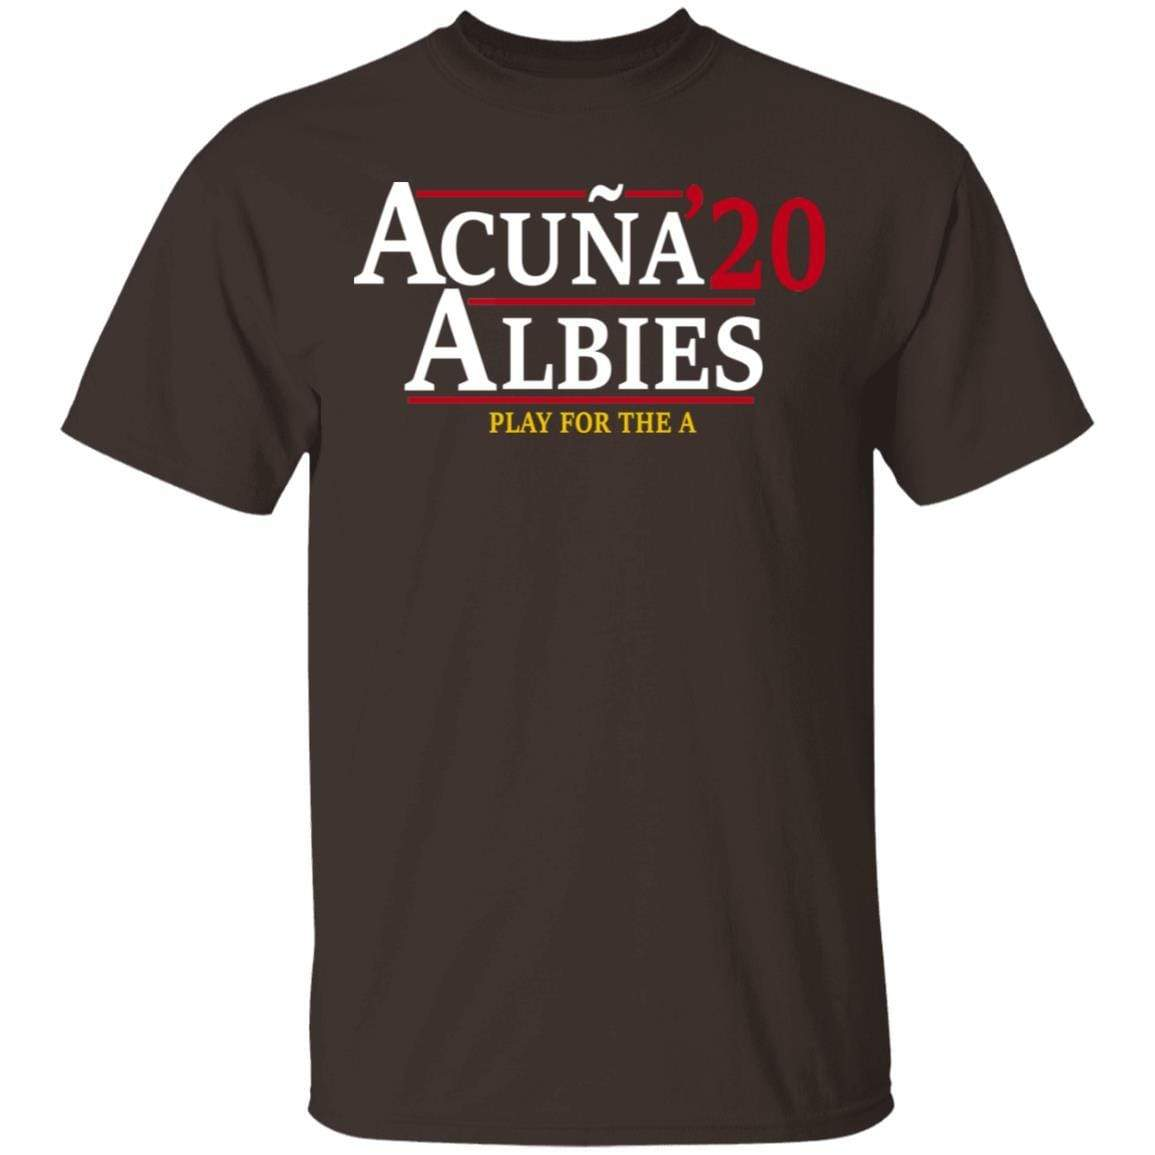 Acuna Albies 2020 Play For The A T-Shirts, Hoodies 1049-9956-88478048-48152 - Tee Ript